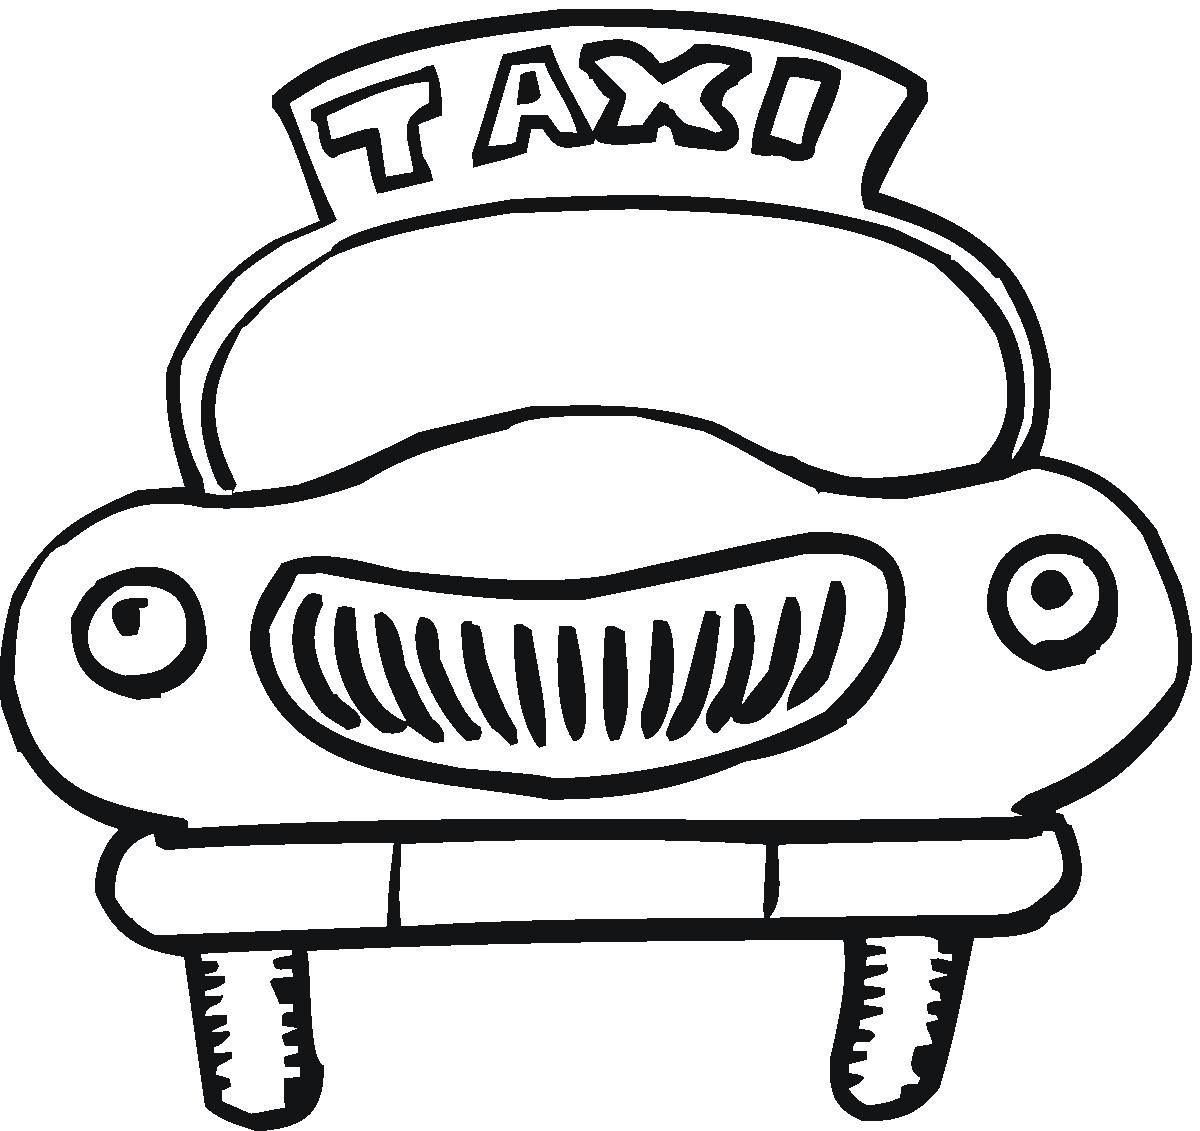 I Know It Says Taxi But I M Going With Cab For When We Study A B